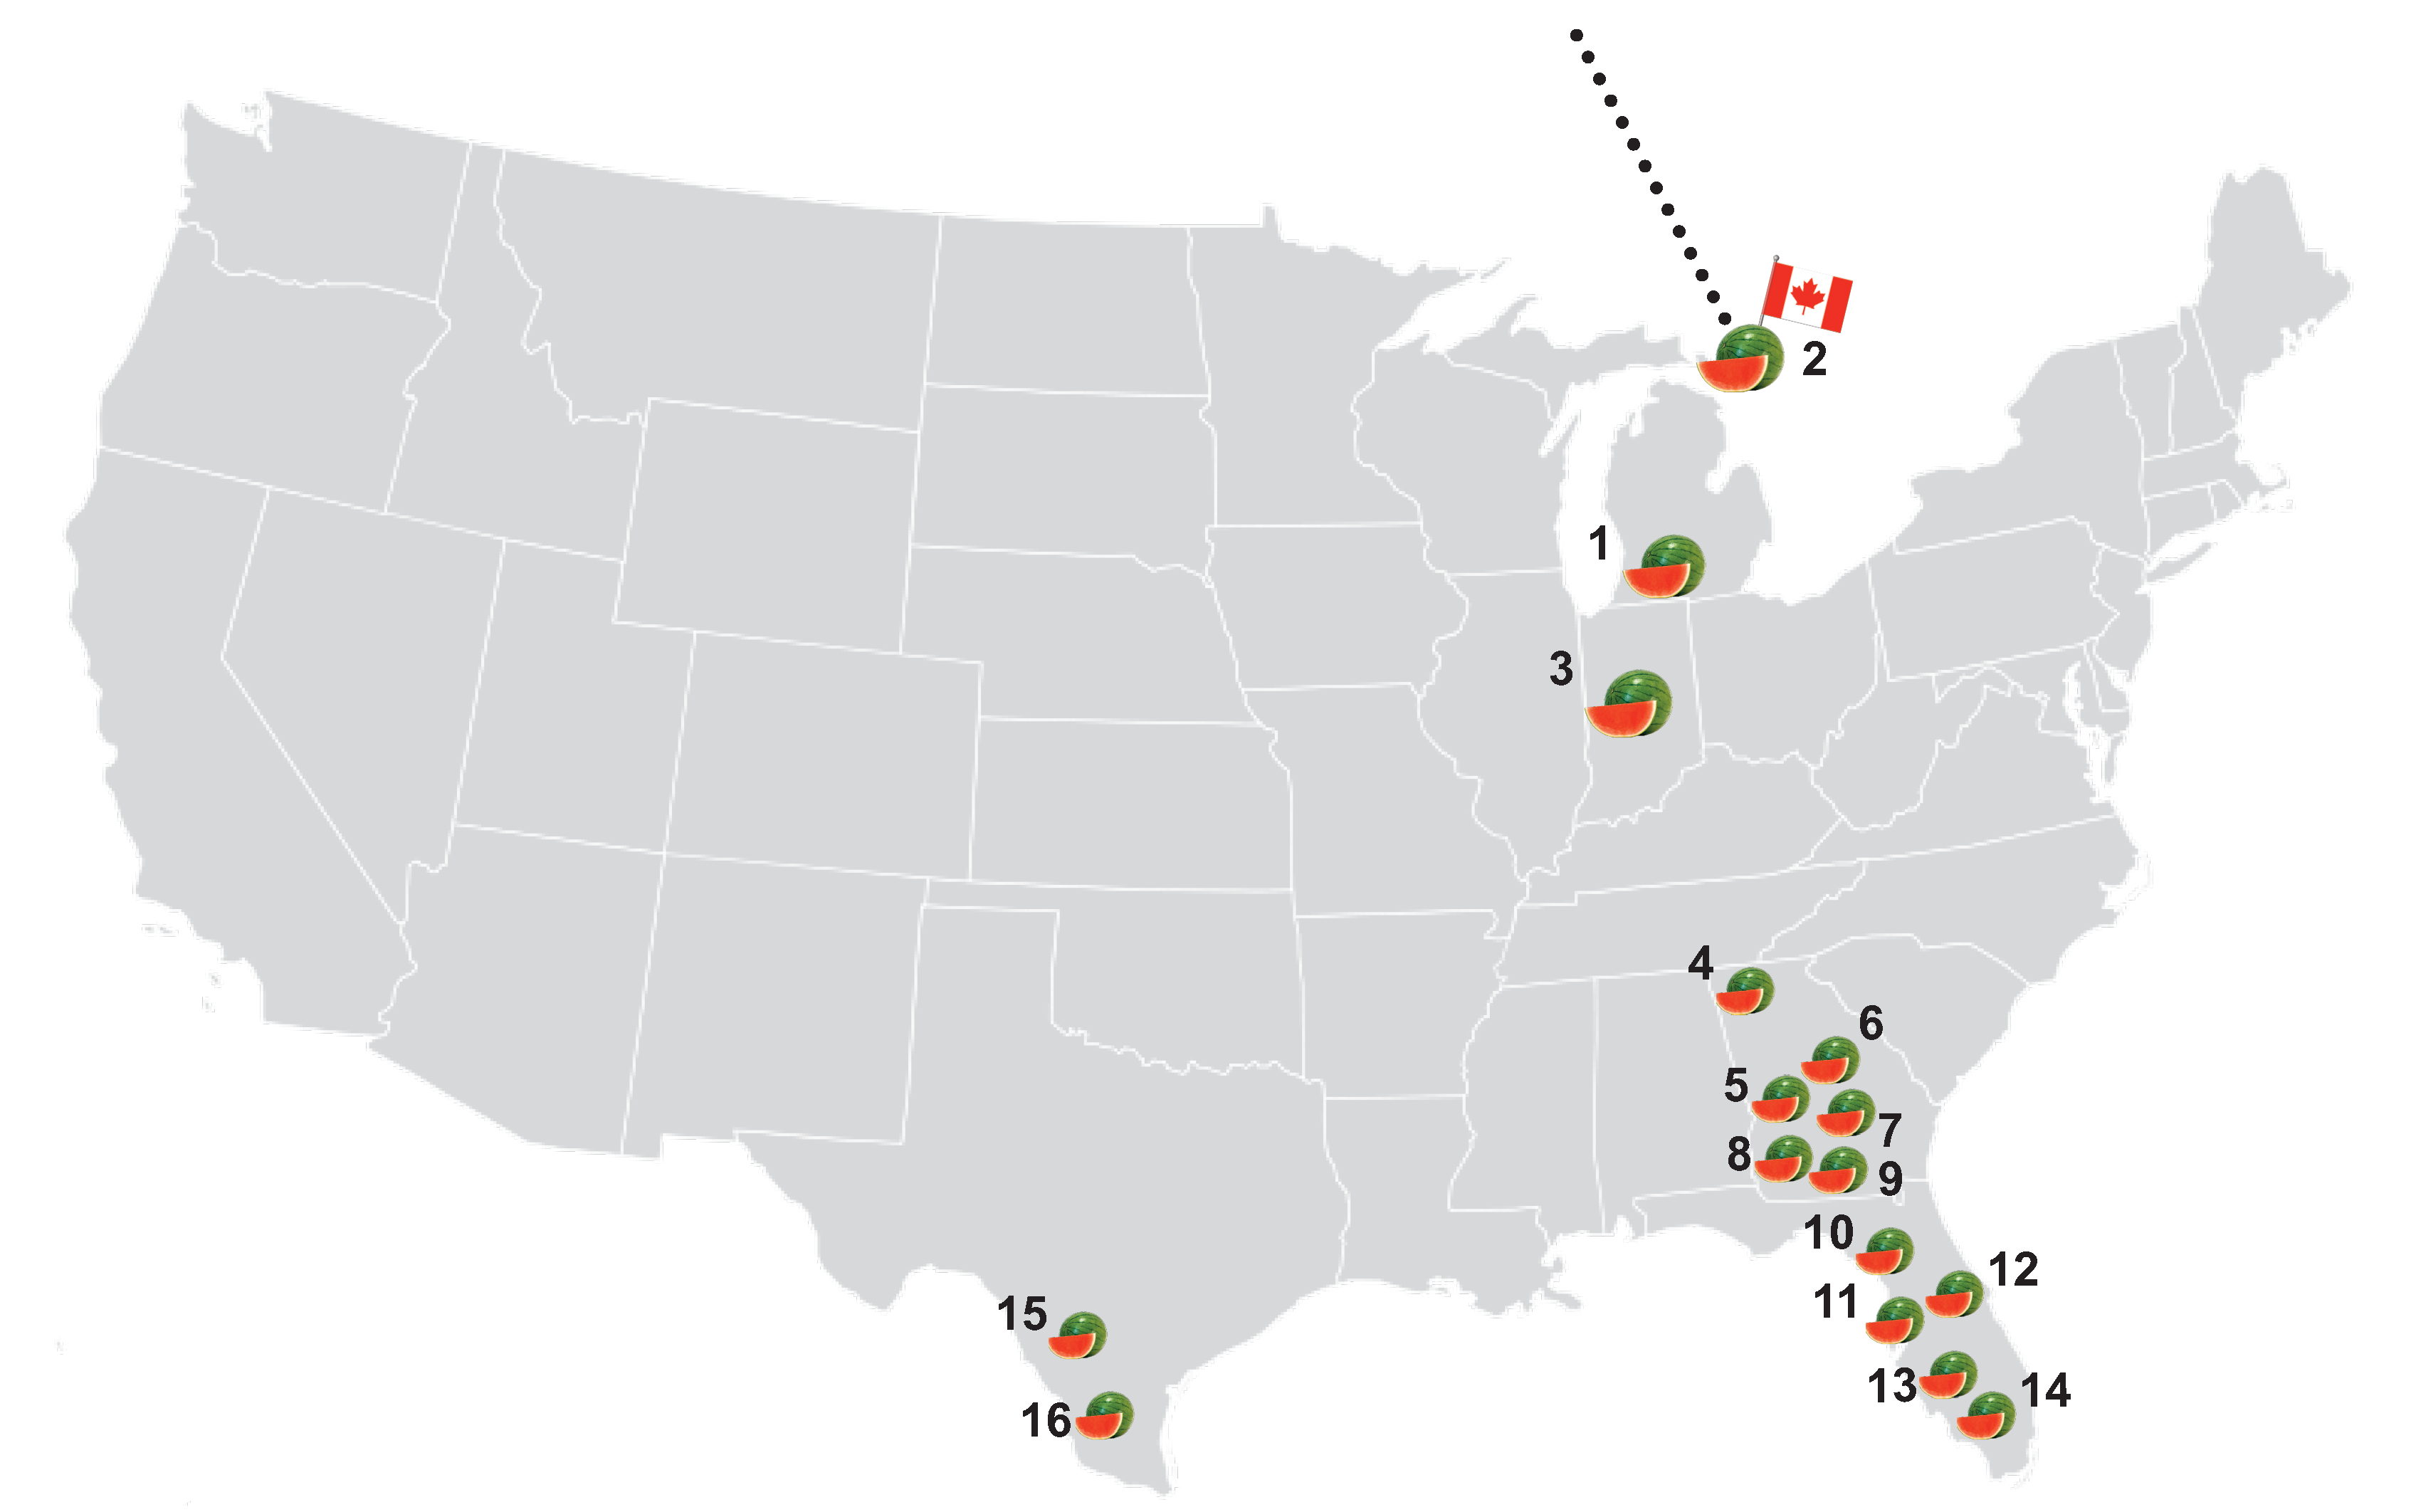 A graphical map of SowLogic greenhouses in the United States